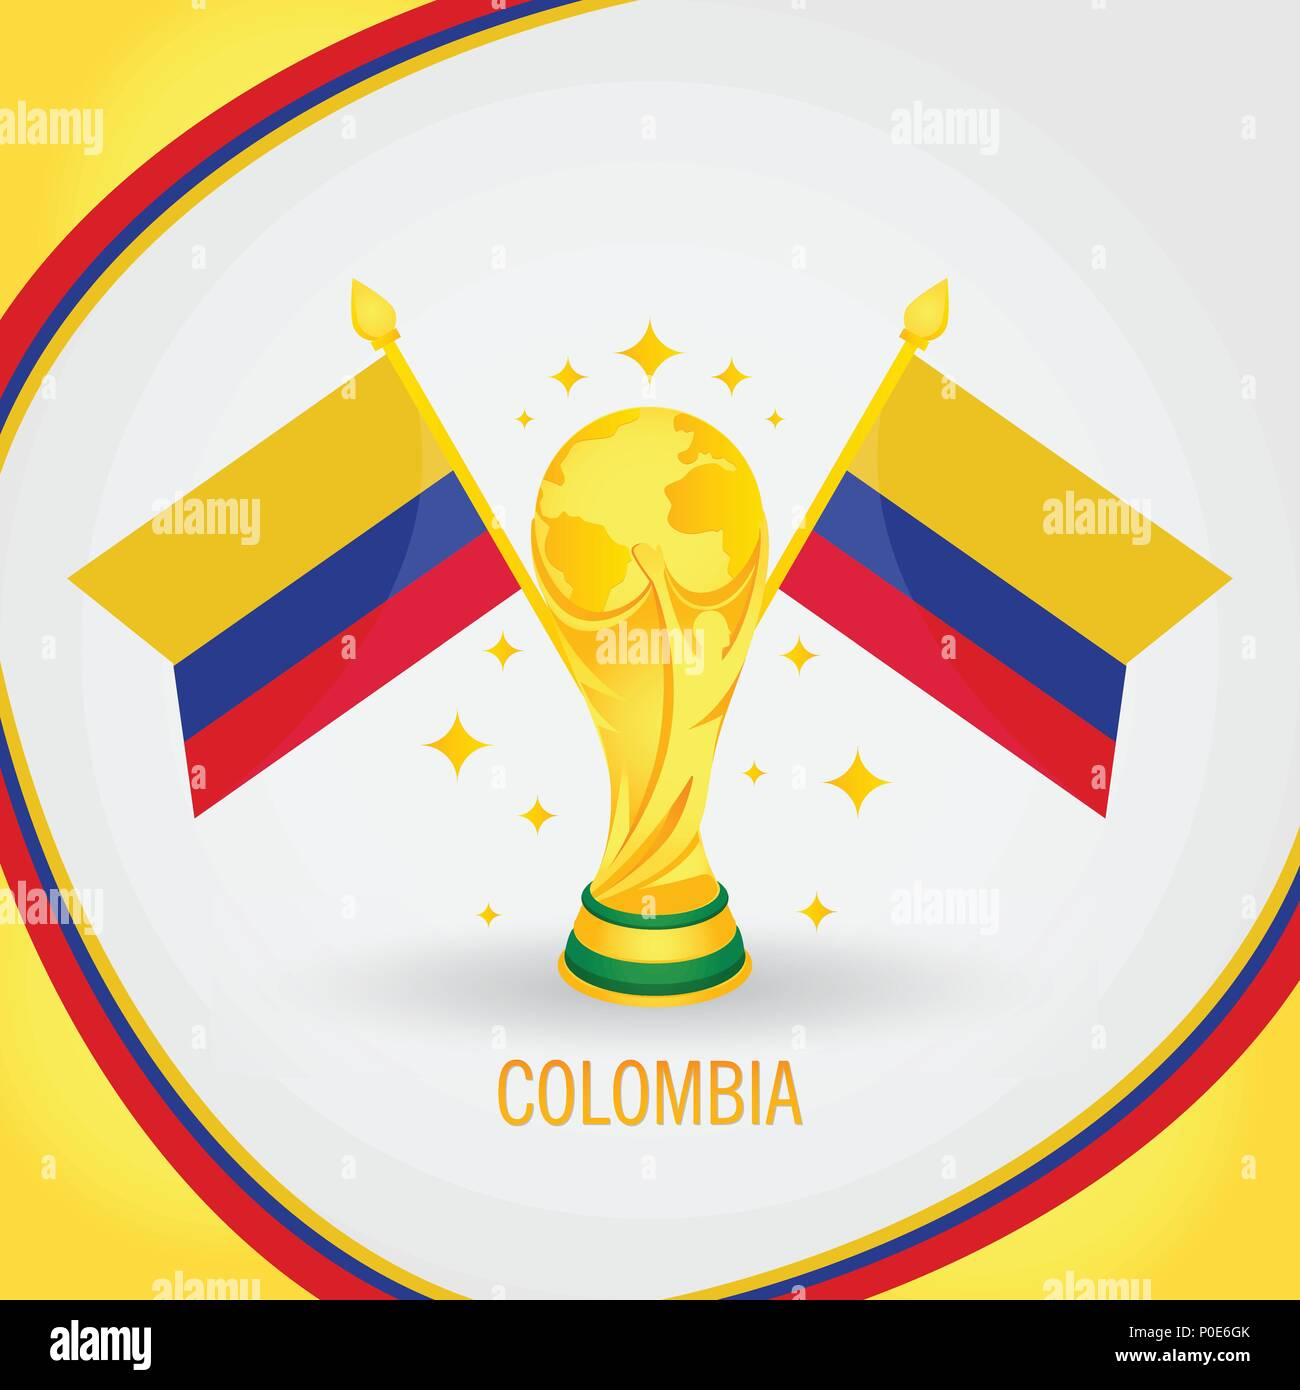 Colombia Football Champion World Cup 2018 - Flag and Golden Trophy - Stock Image